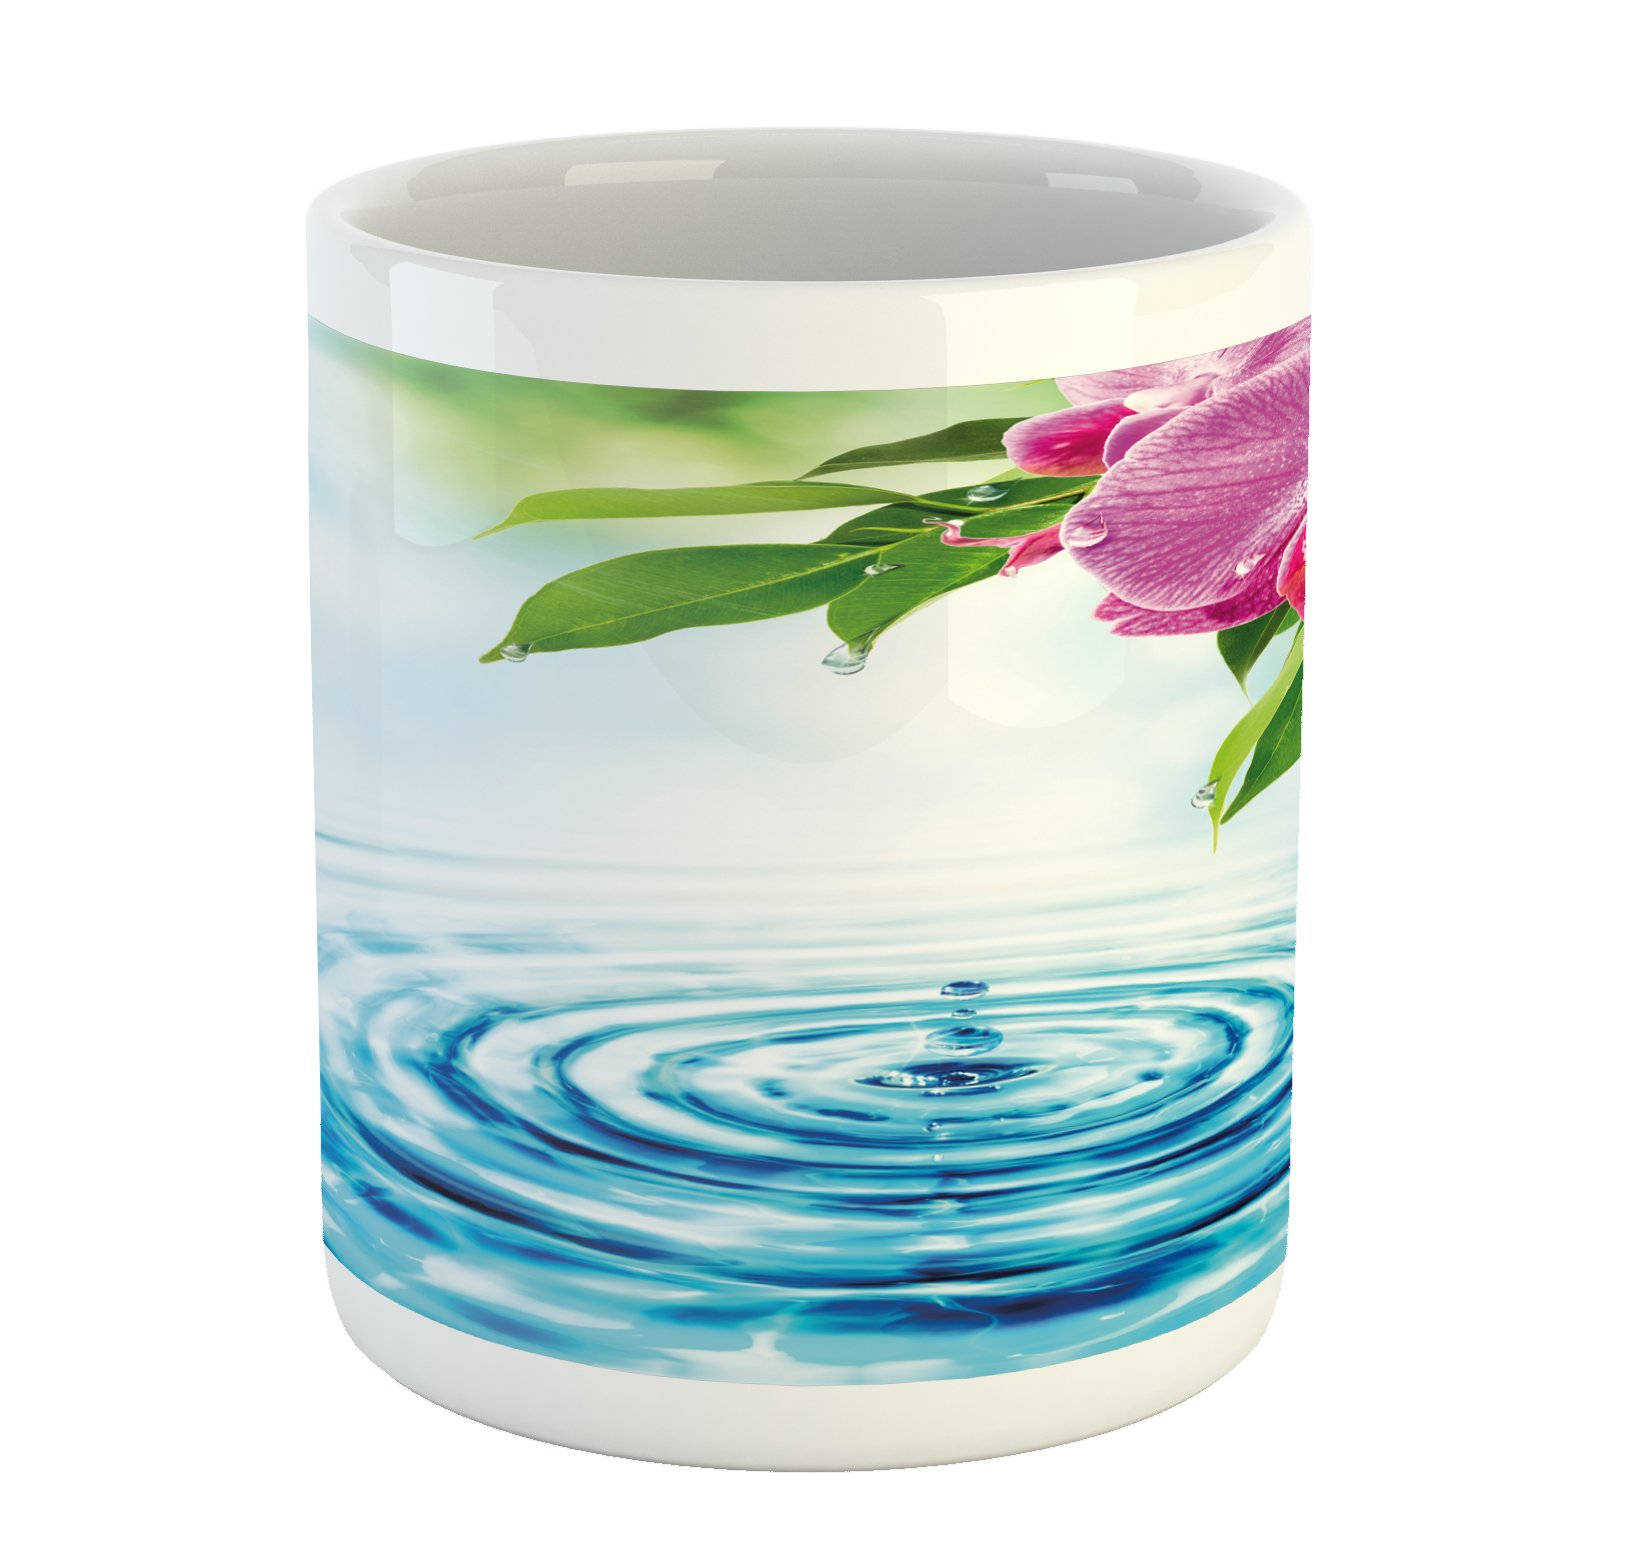 Lunarable Floral Mug, Natural Inspired Relaxation Orchid Petals Down on Water Spa Meditation Zen Concept, Printed Ceramic Coffee Mug Water Tea Drinks Cup, Multicolor